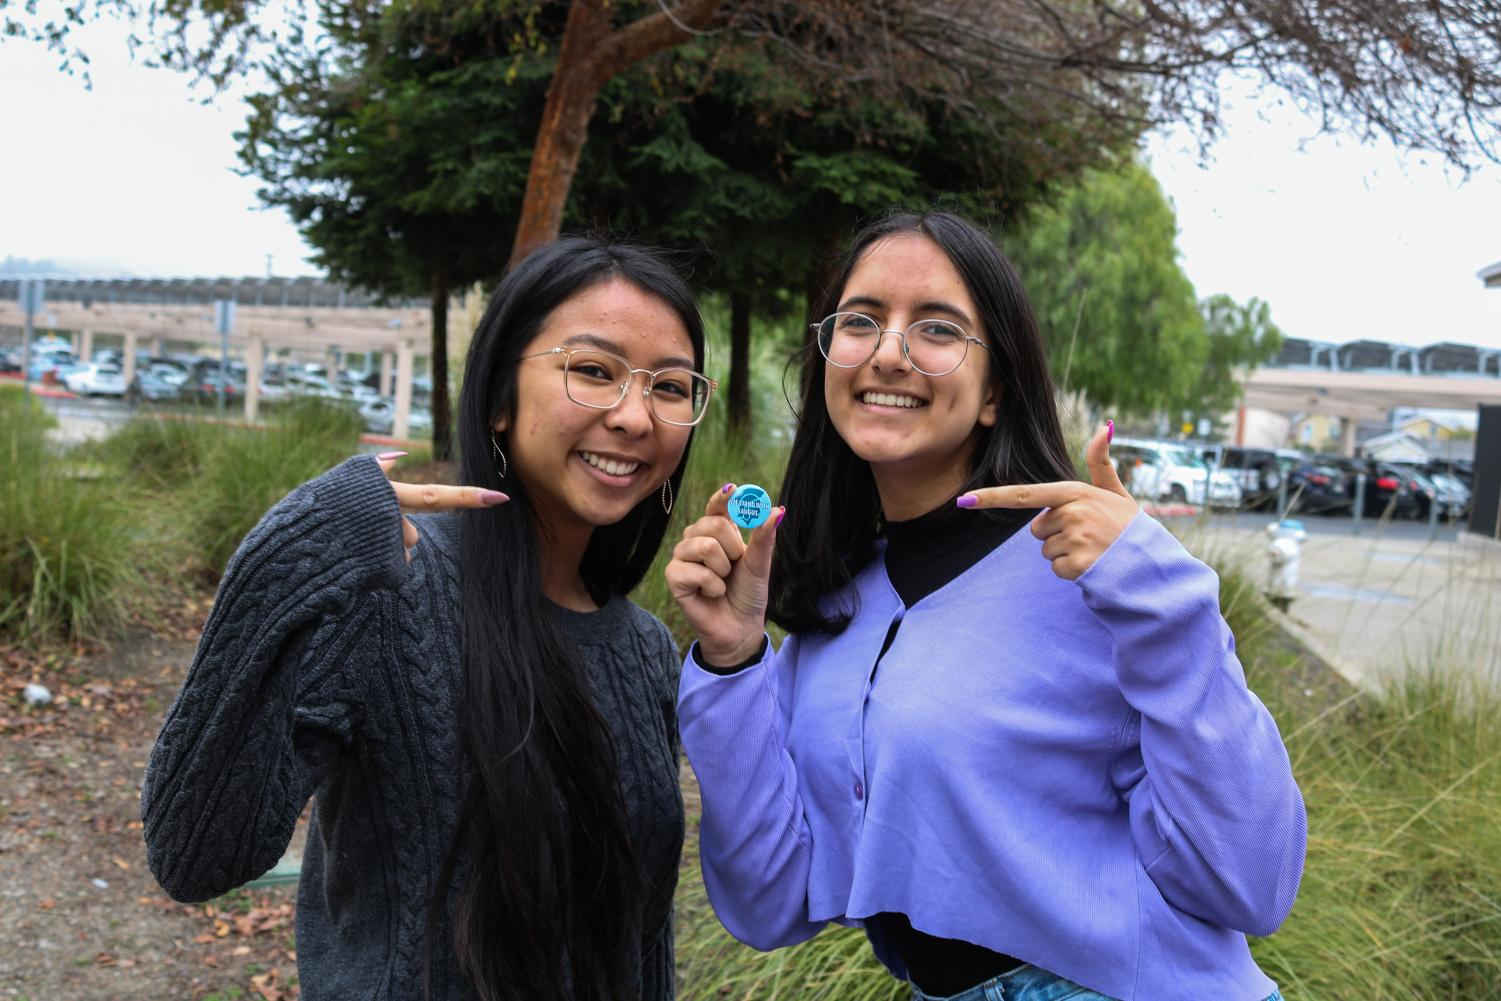 Pin Pals co-presidents and seniors Clarissa Mendoza, left, and Riya Belani pose with one of the pins that their club has designed for Saugus High School in Santa Clarita. Proceeds from pin sales went to support the Southern California school which experienced a shooting on Nov. 14 that killed two students.